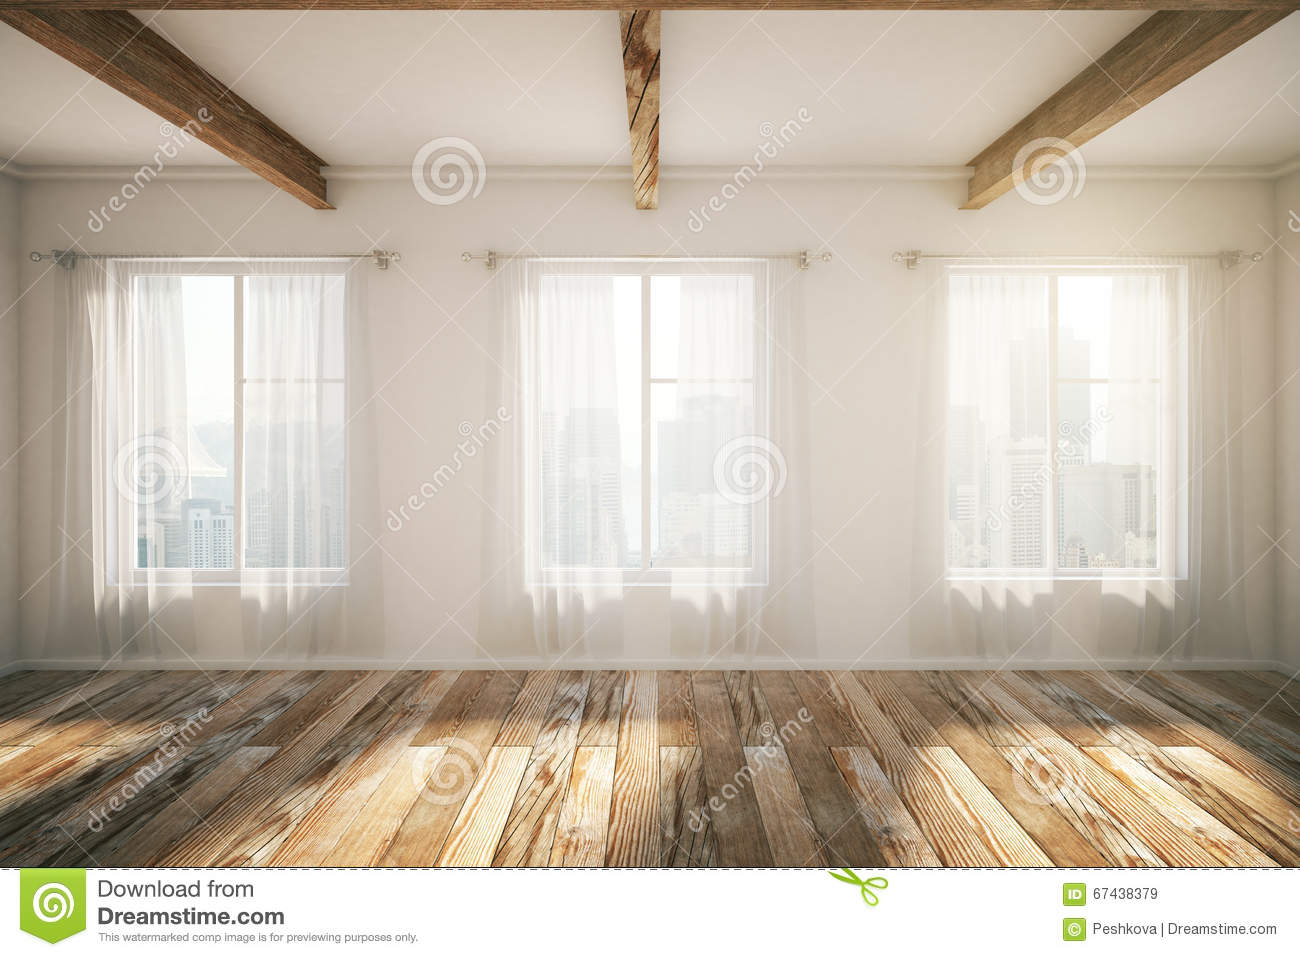 Loft Interior With Windows Brown Parquet And Curtains